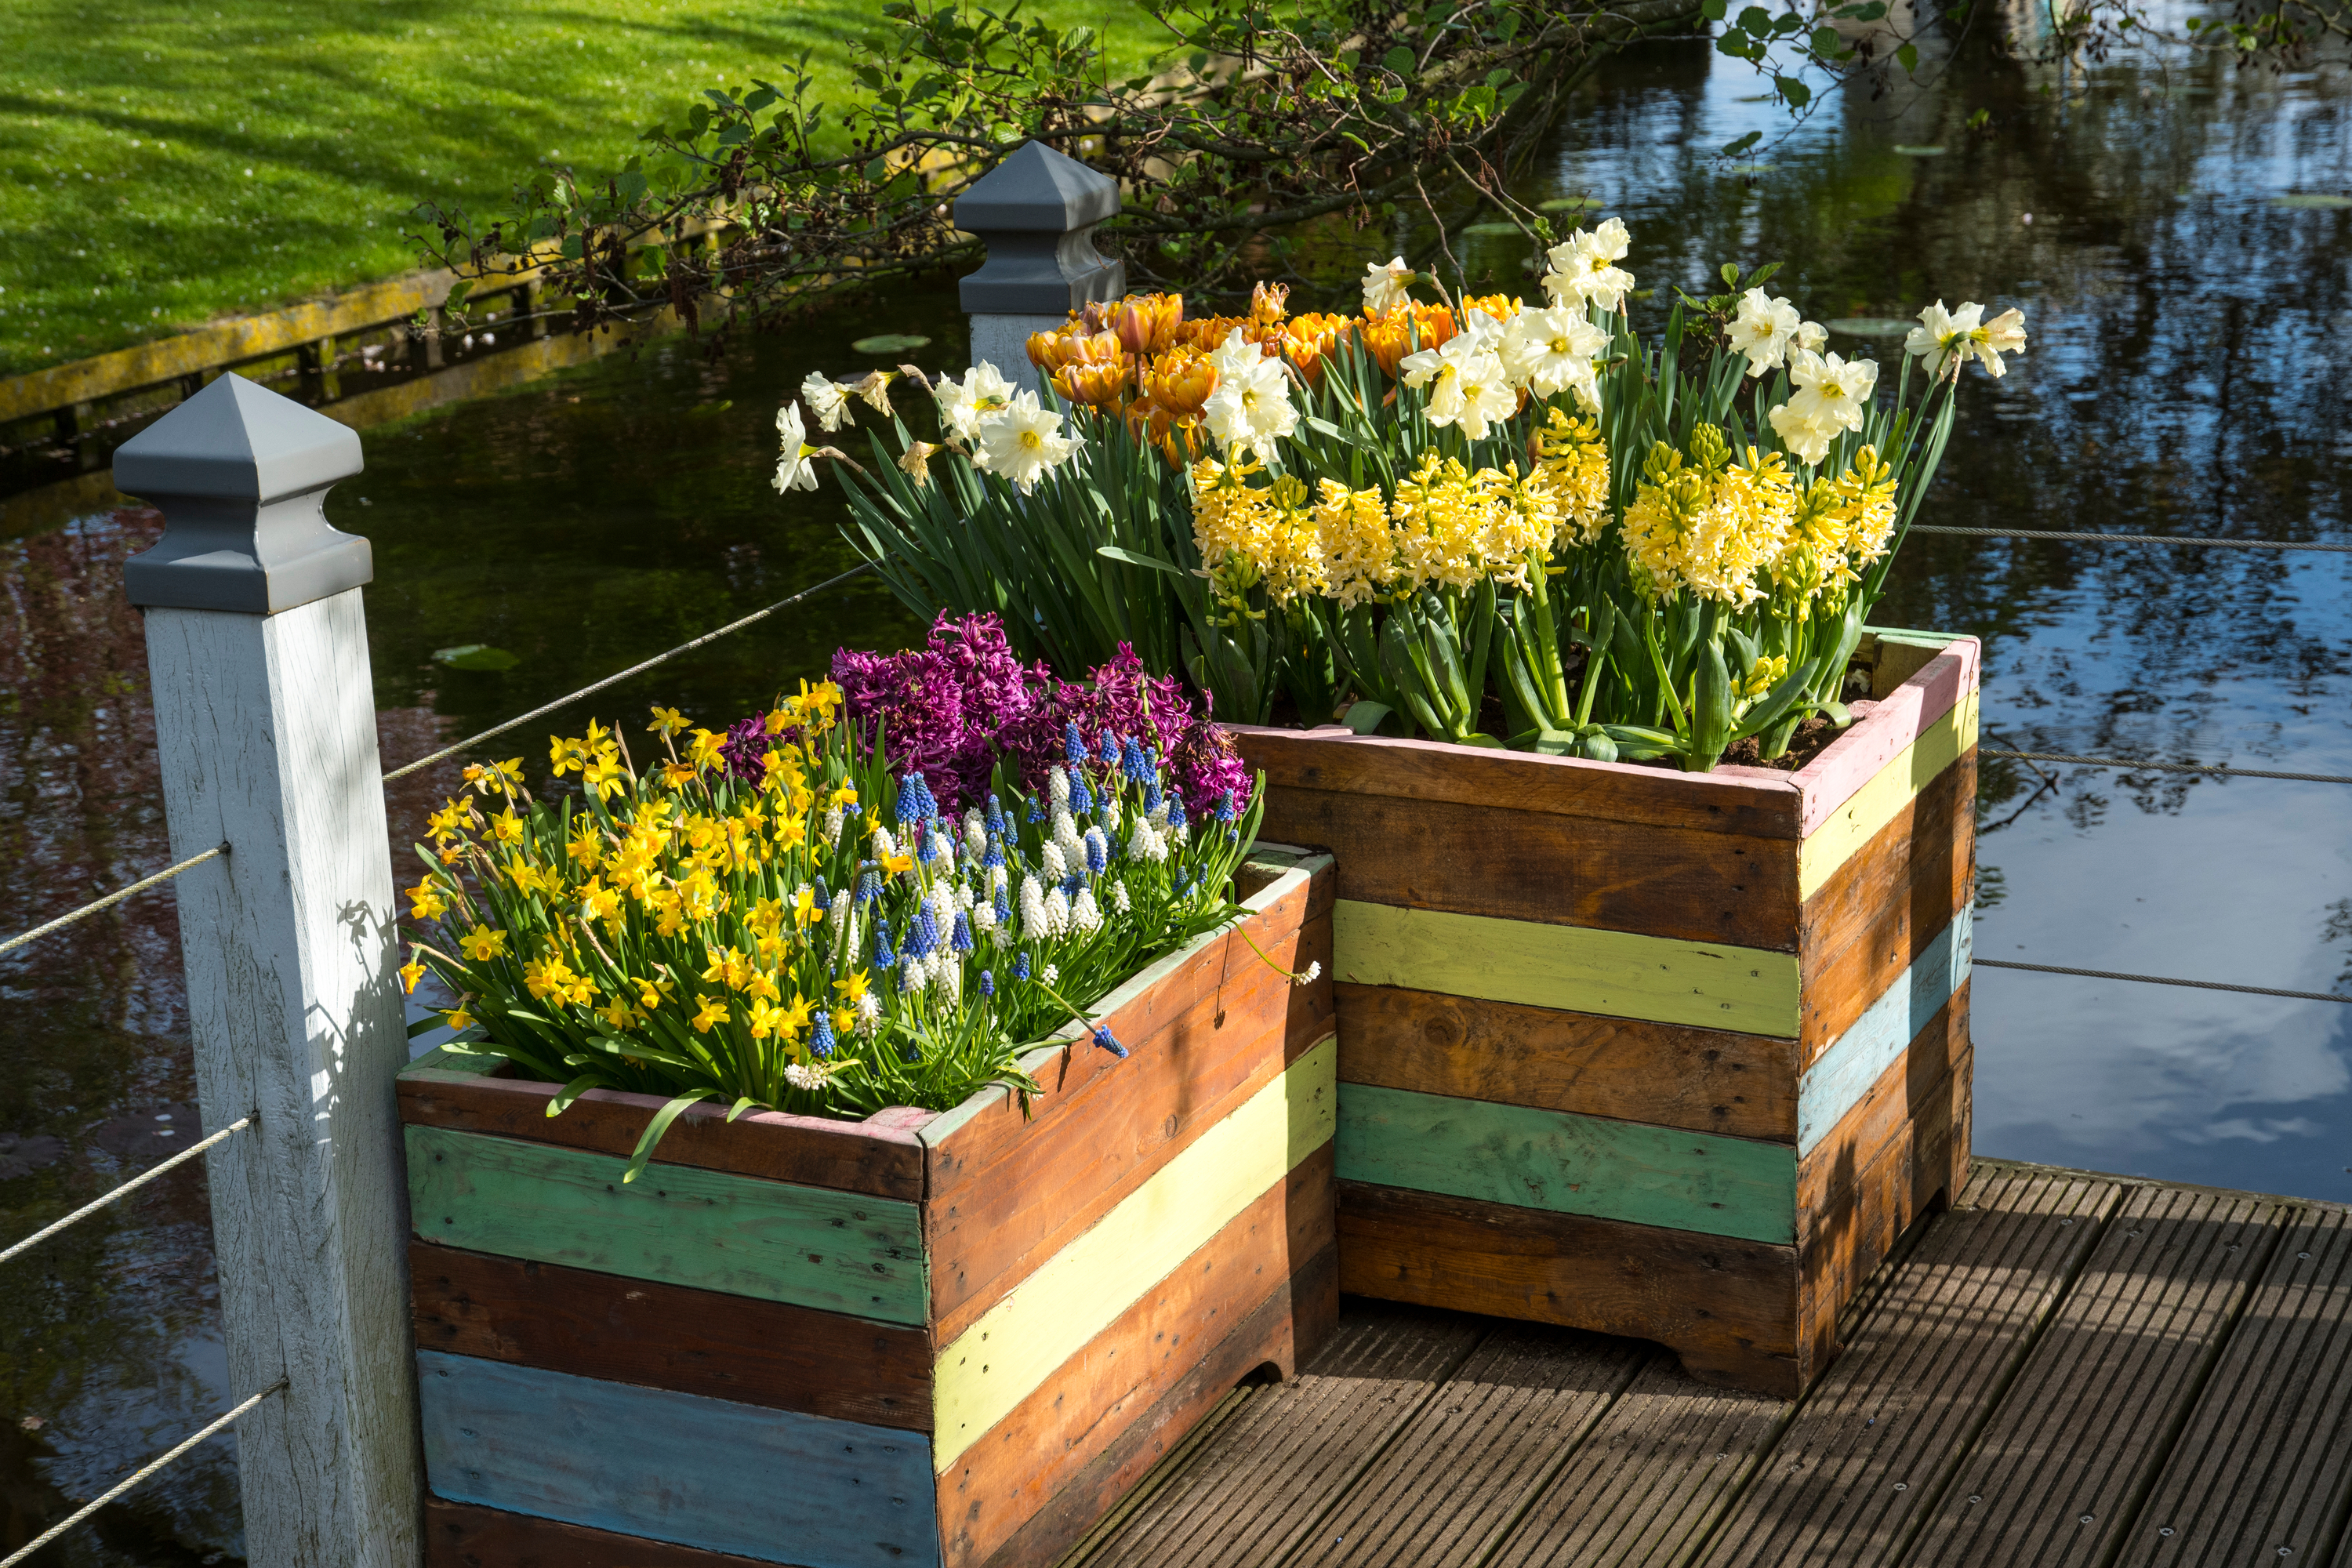 If you want to make the most beautiful pots for your garden, try layering bulbs in the pot. You will love the way they look all year long.